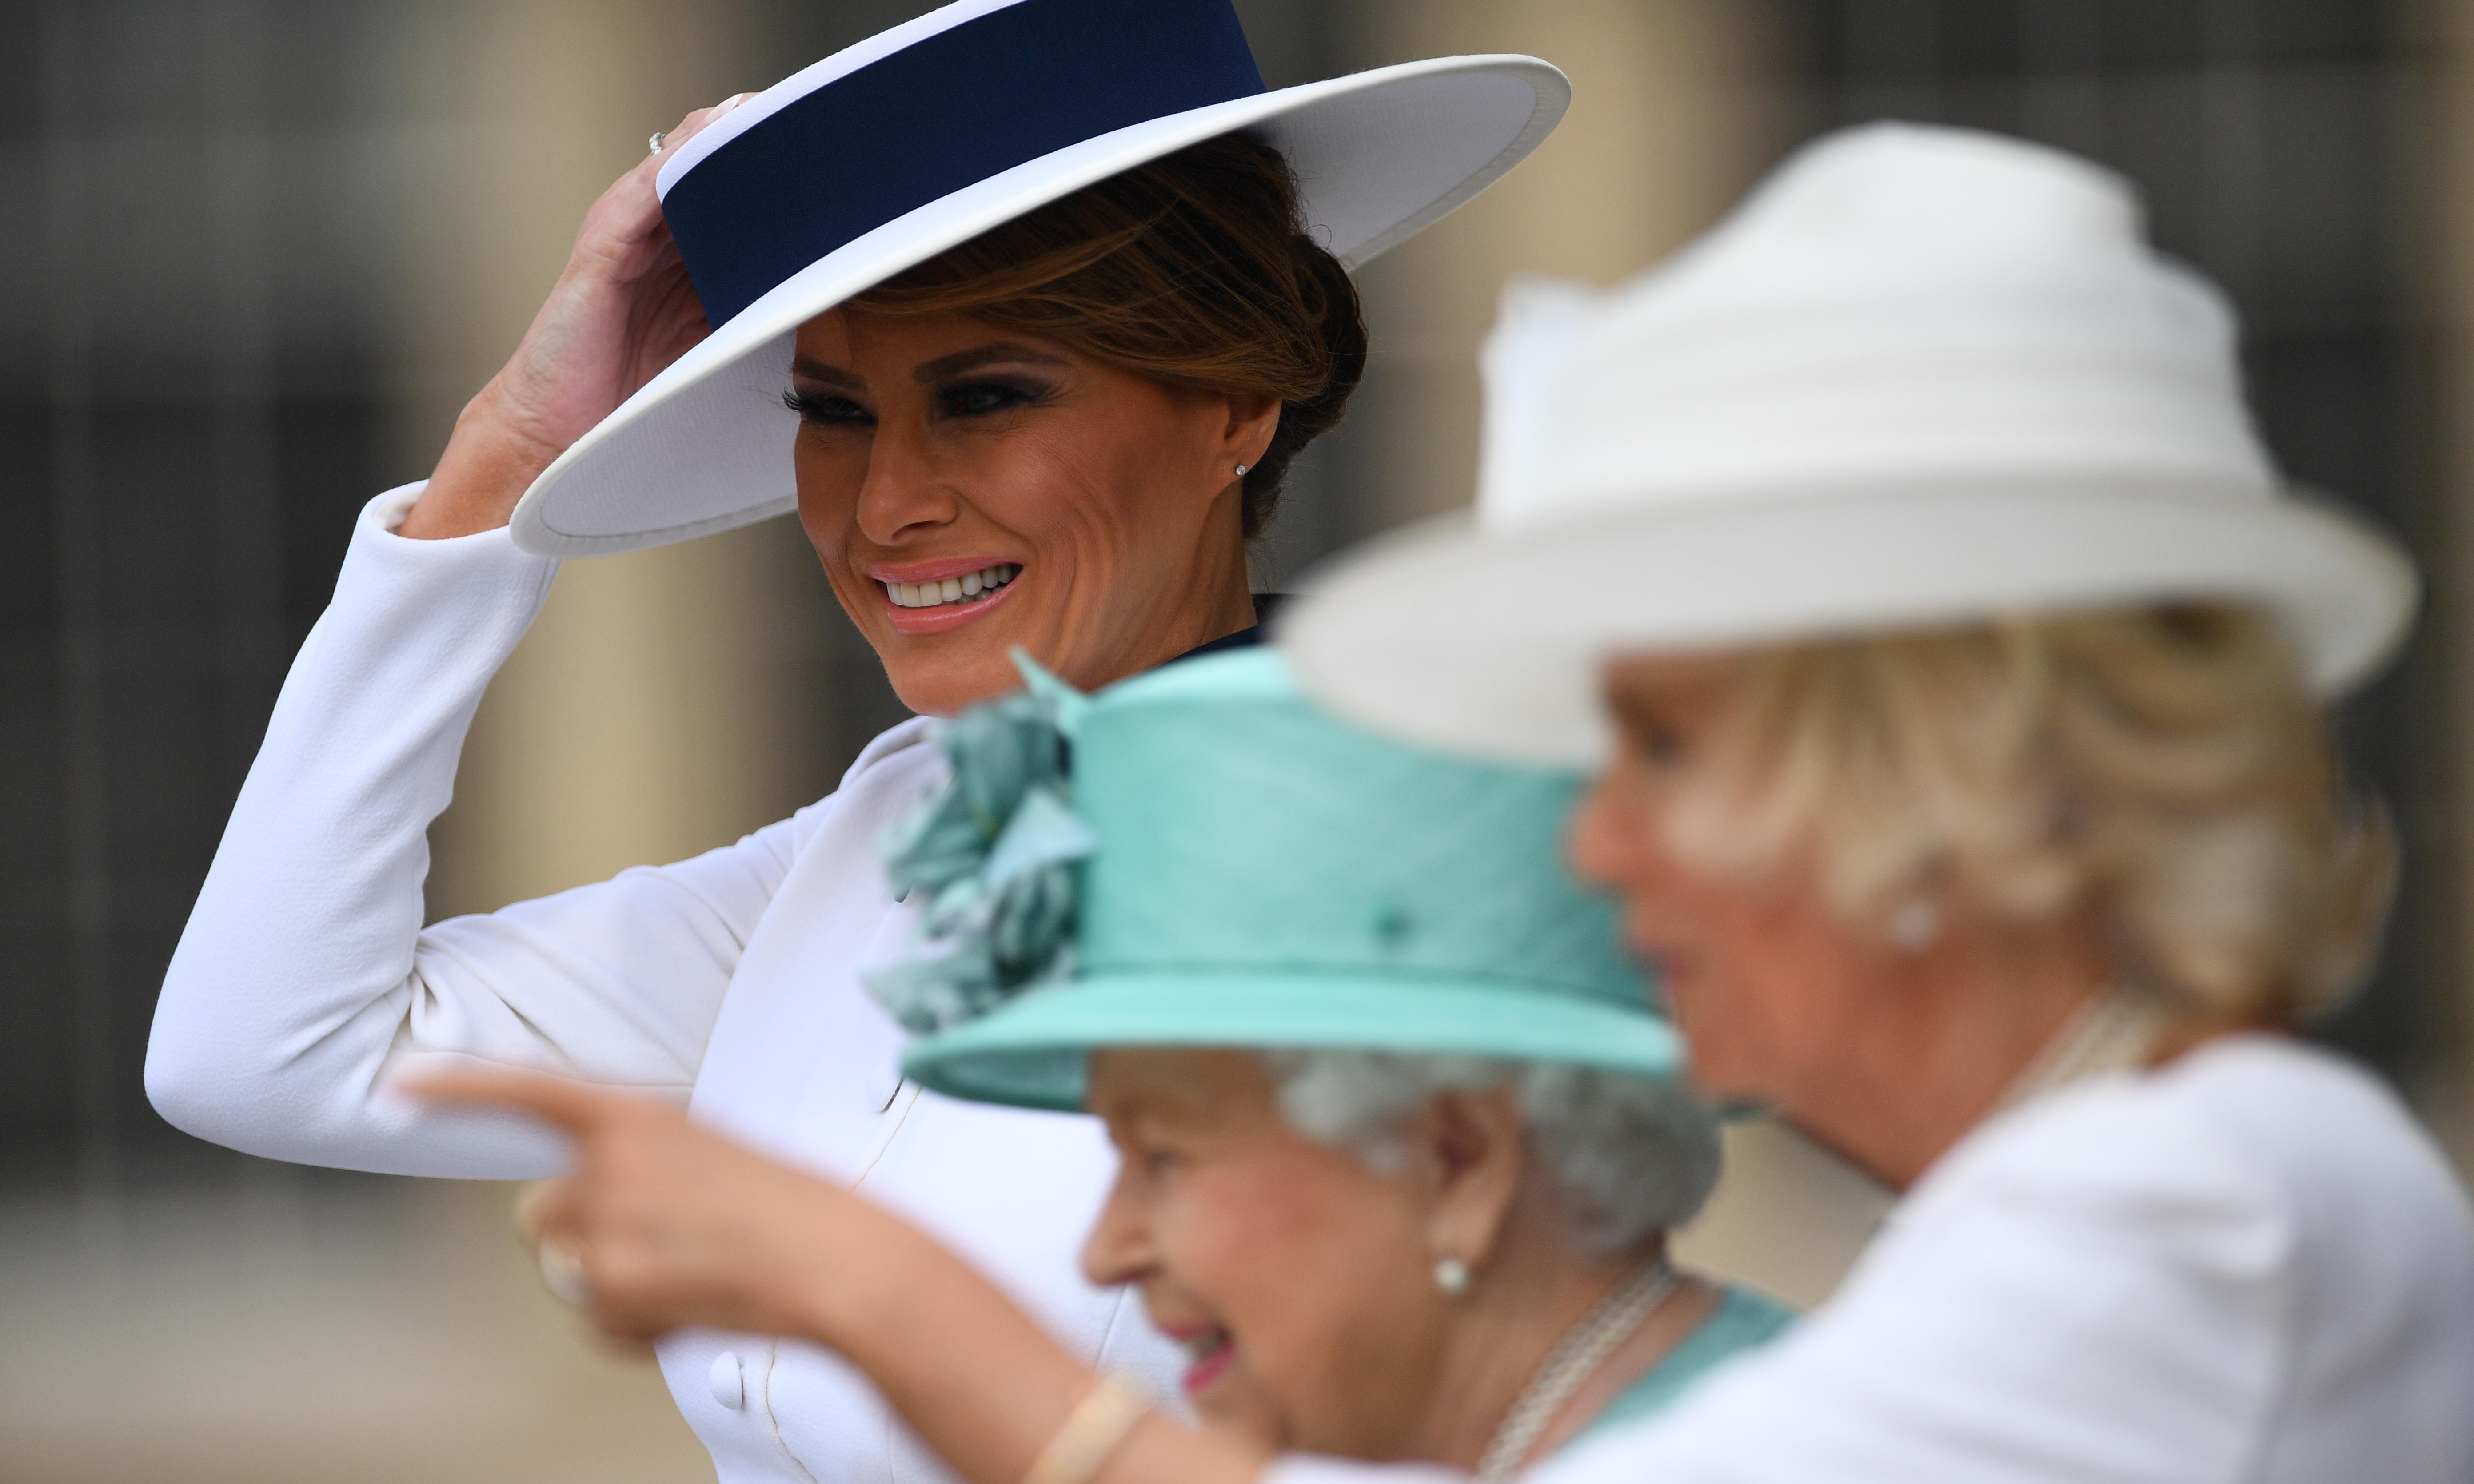 Unmistakably British: Melania Trump's outfits inspired by UK